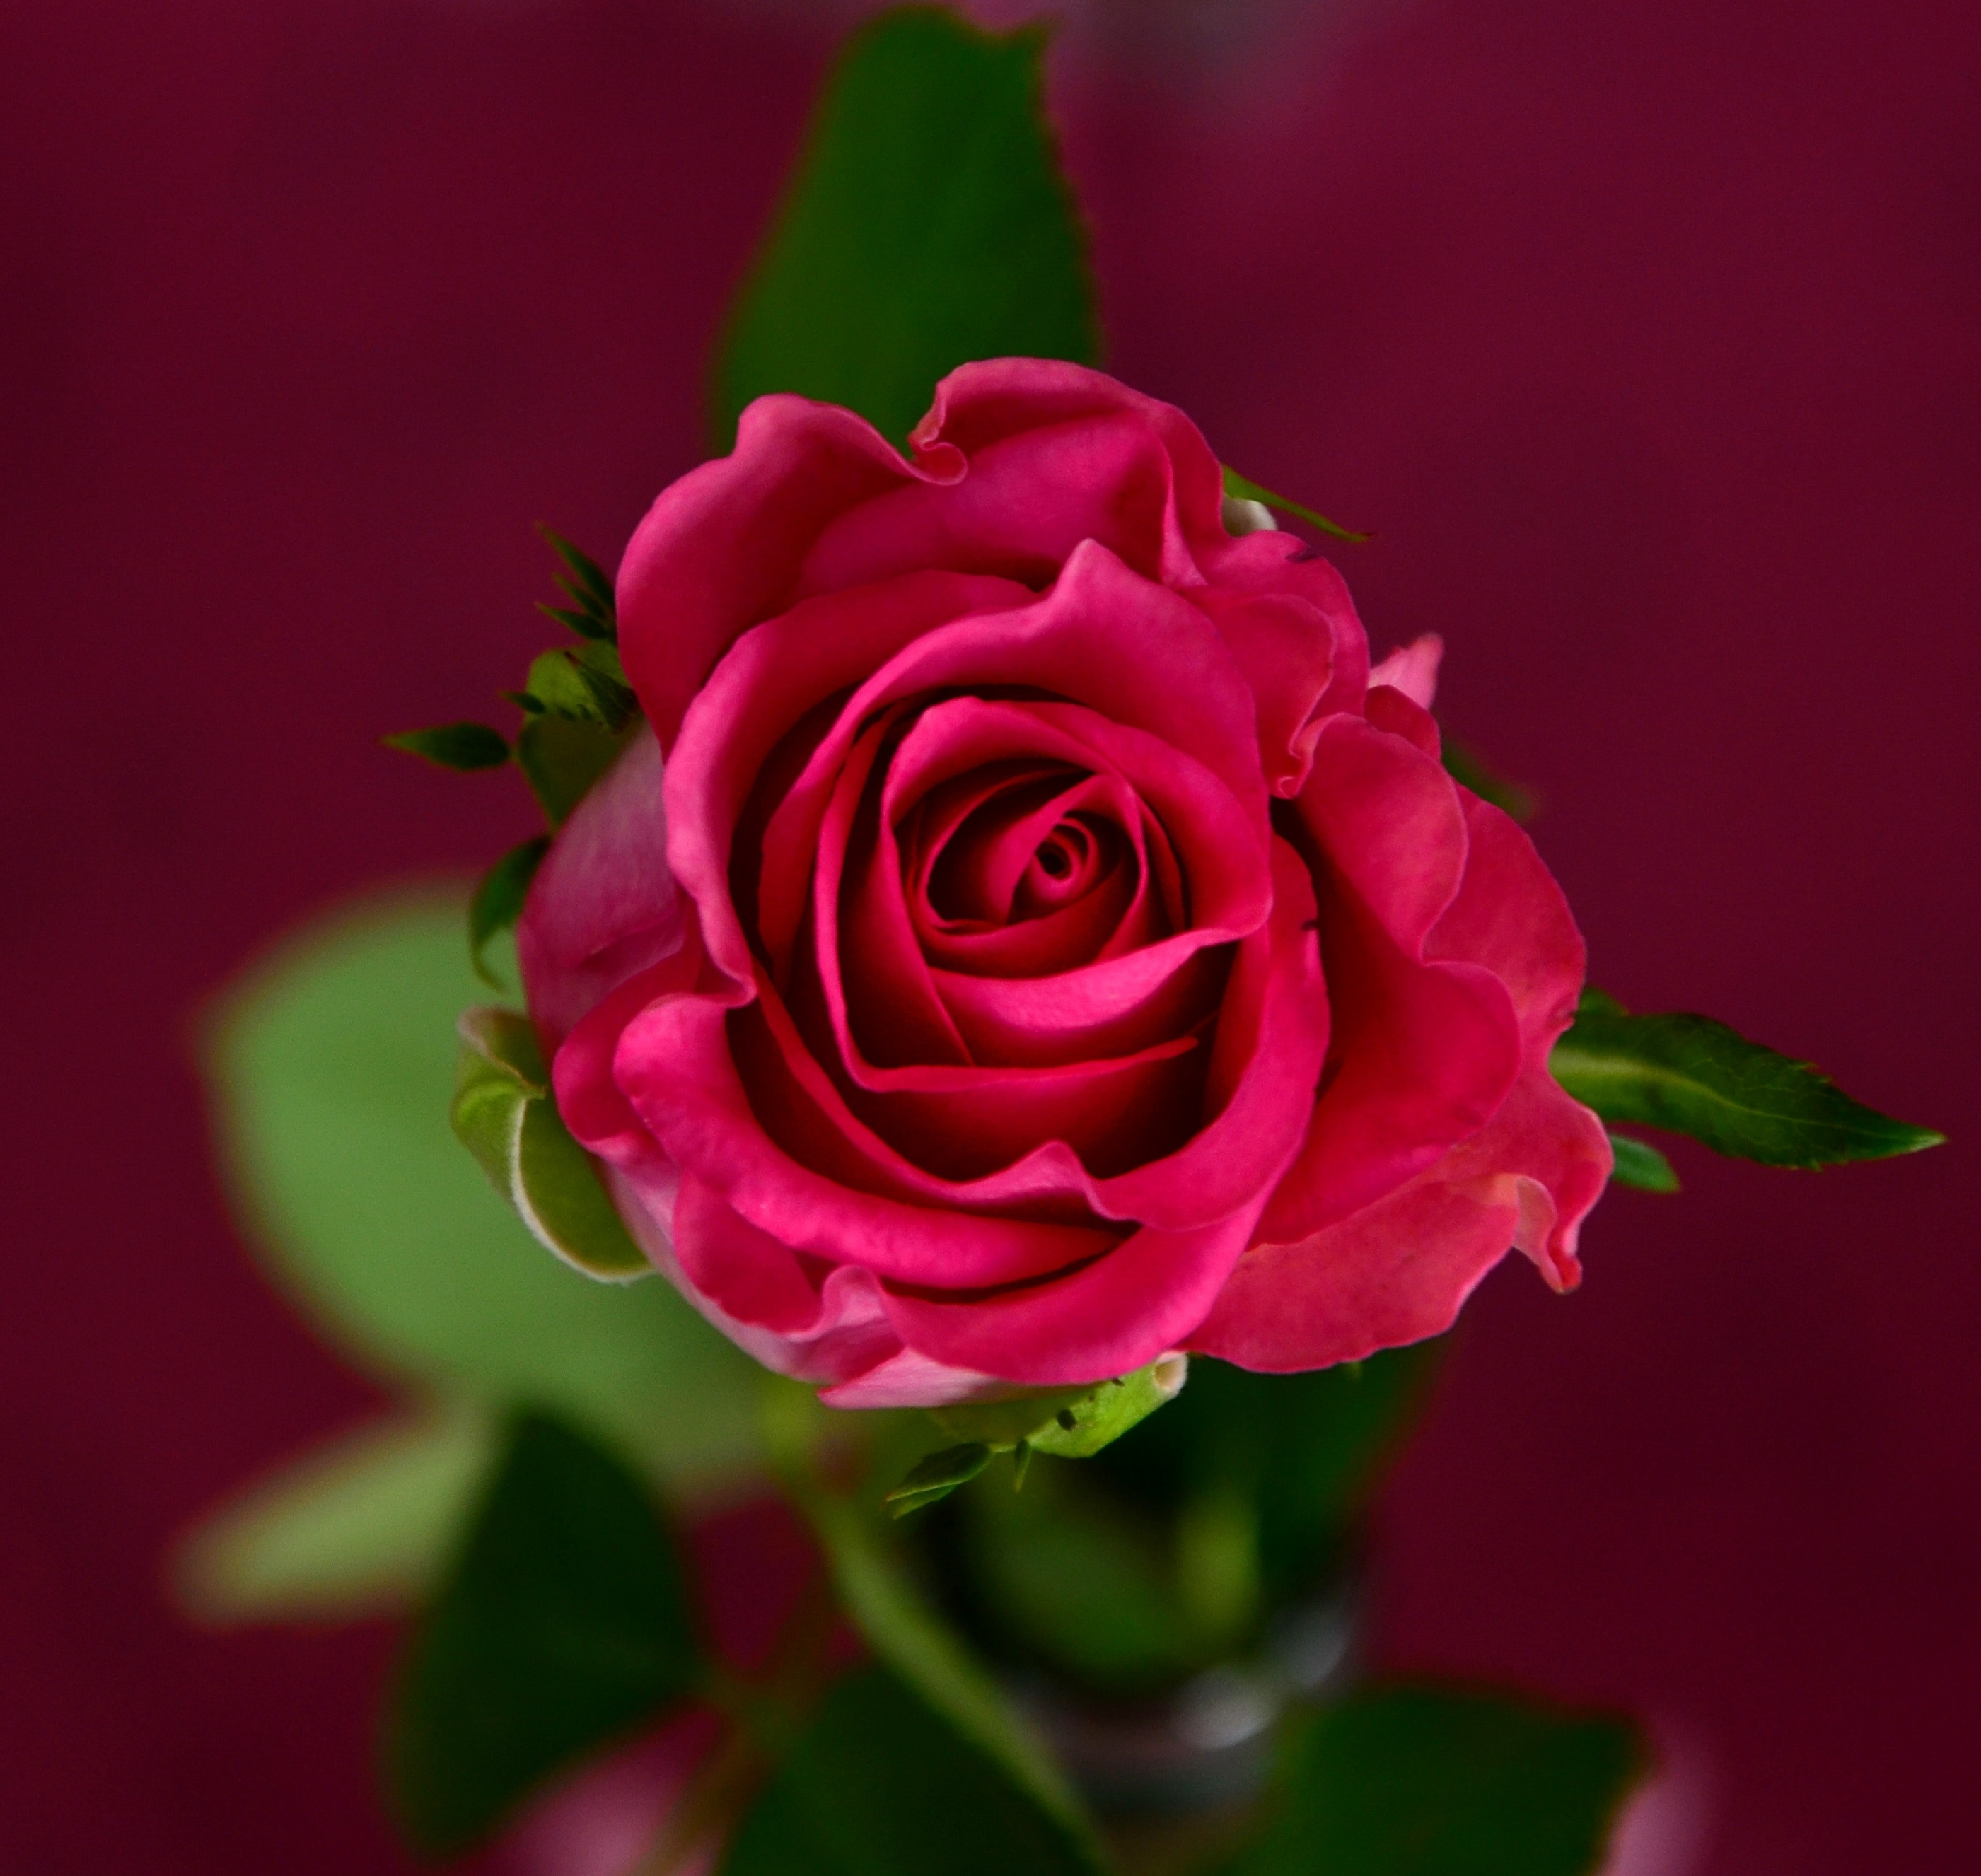 Rose Images Pexels Free Stock Photos